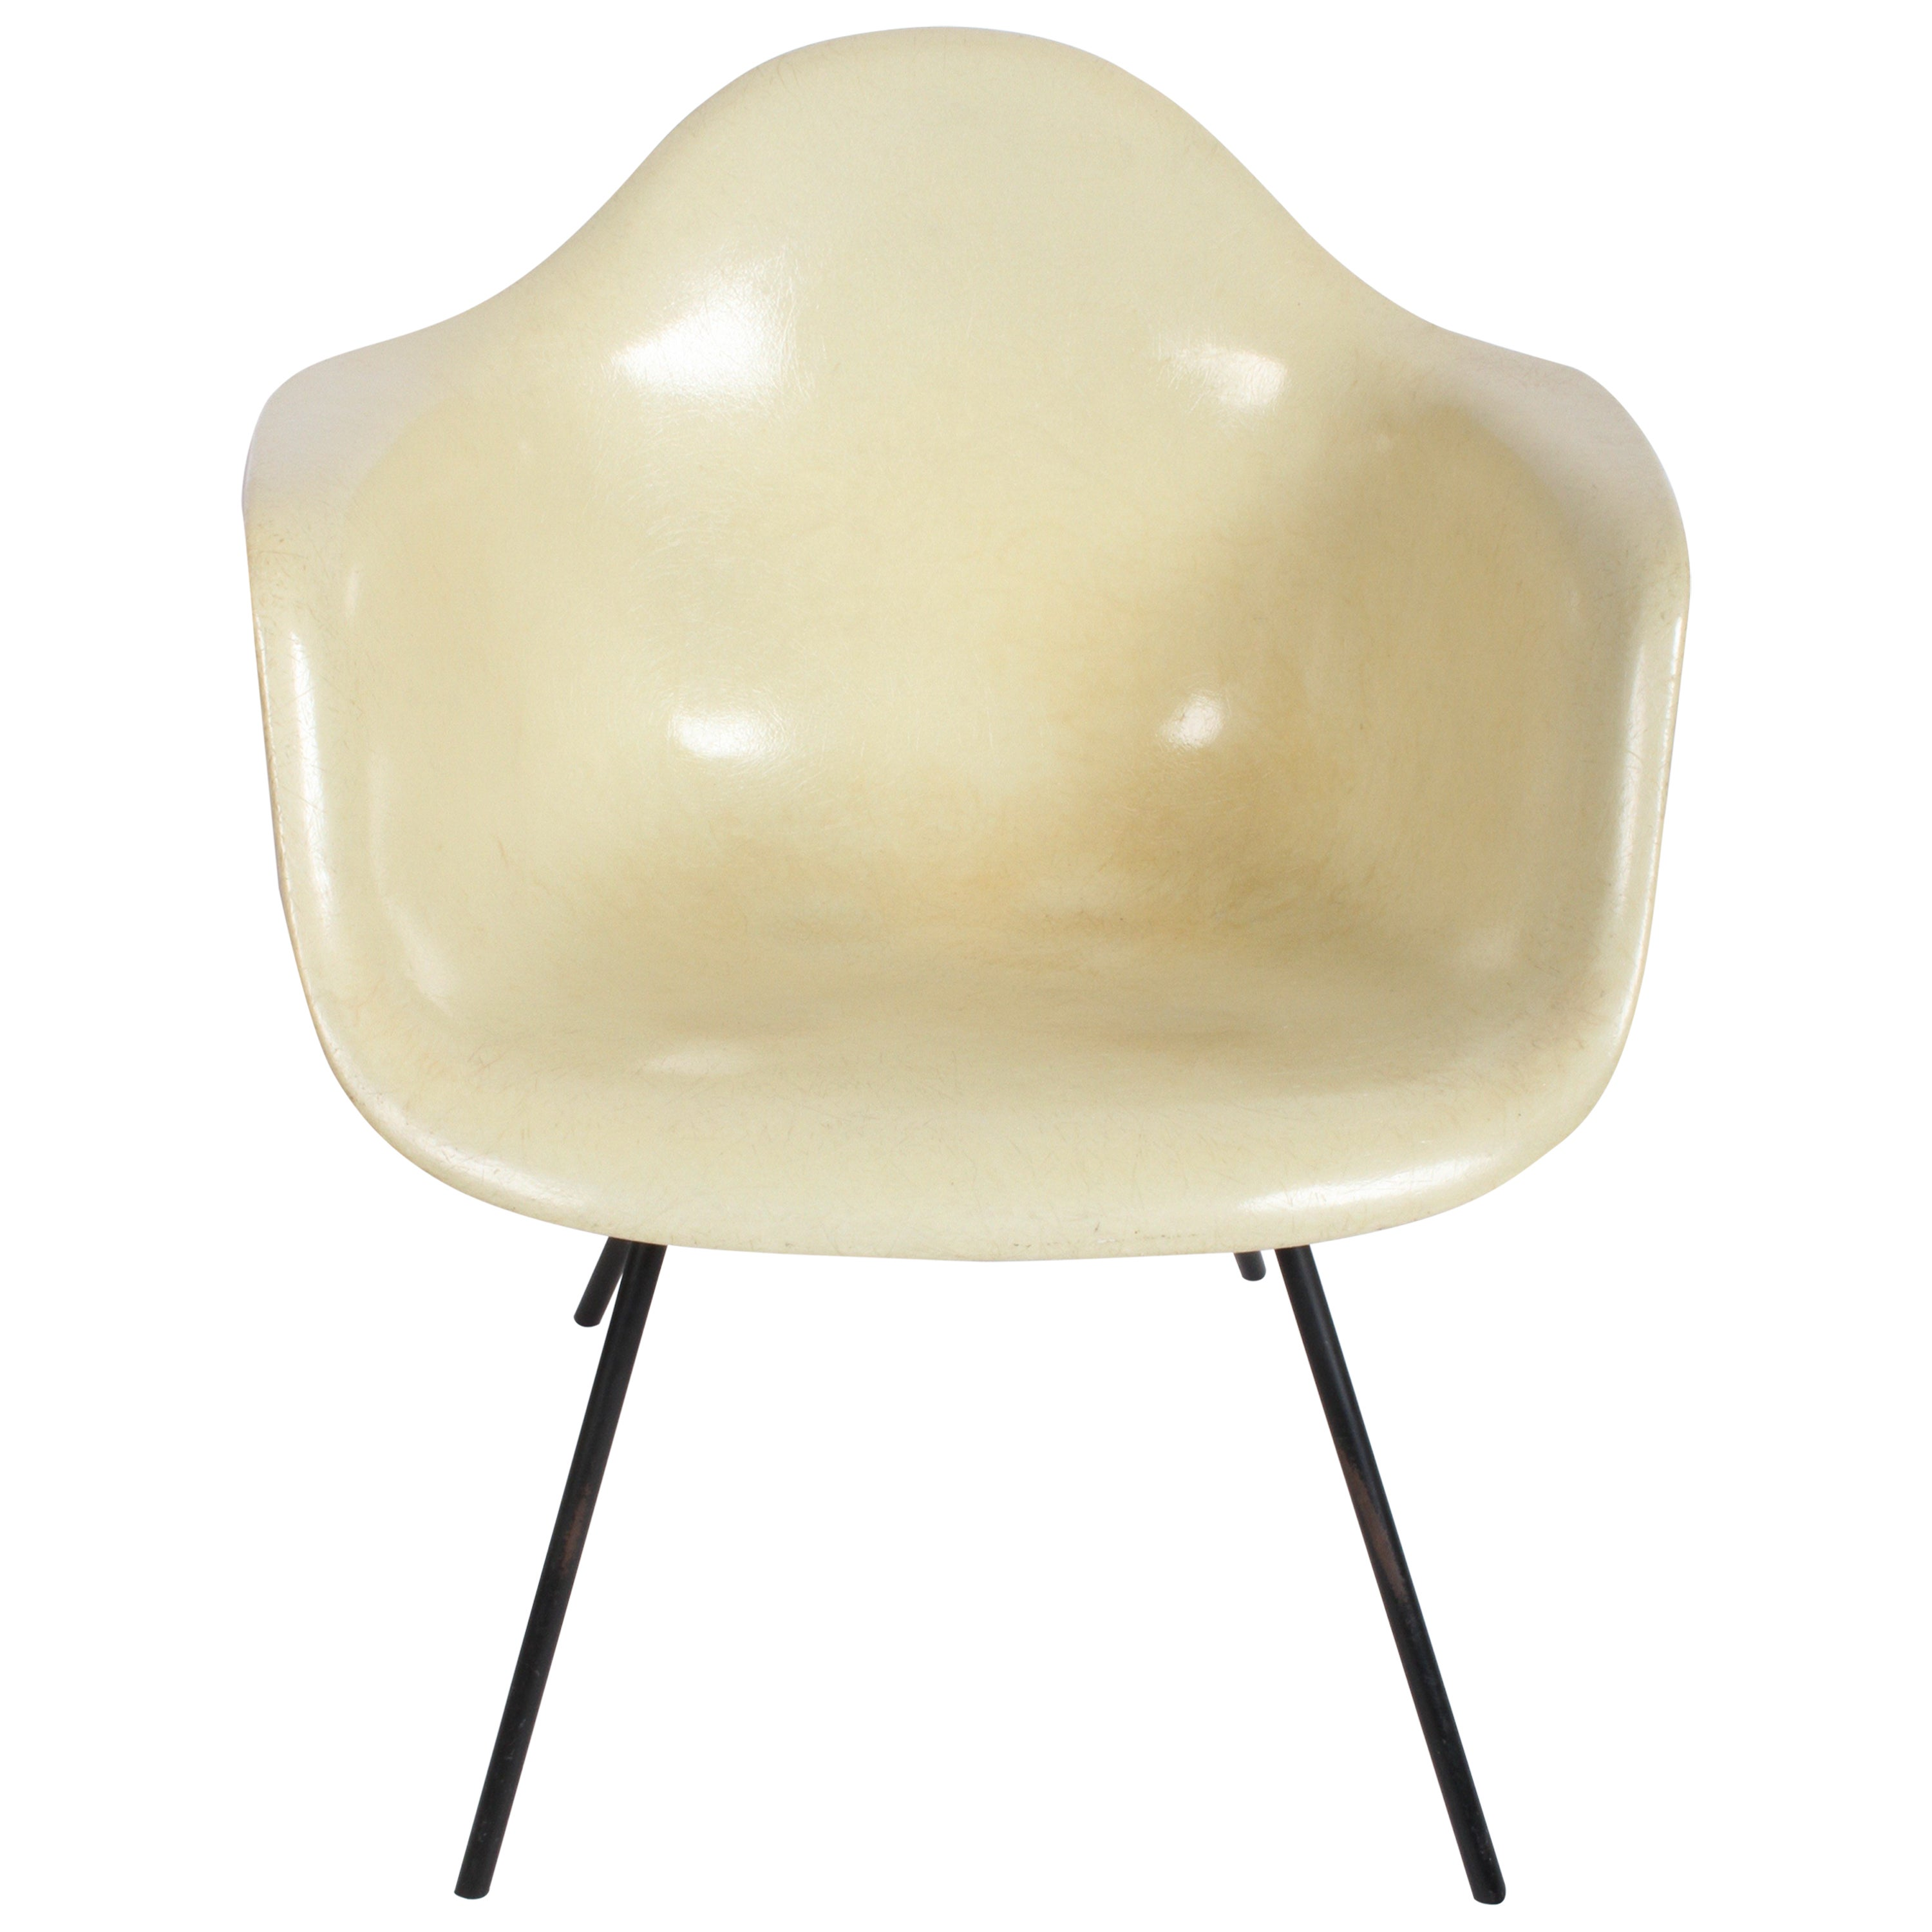 Charles Eames for Herman Miller Low DAX Shell Armchair